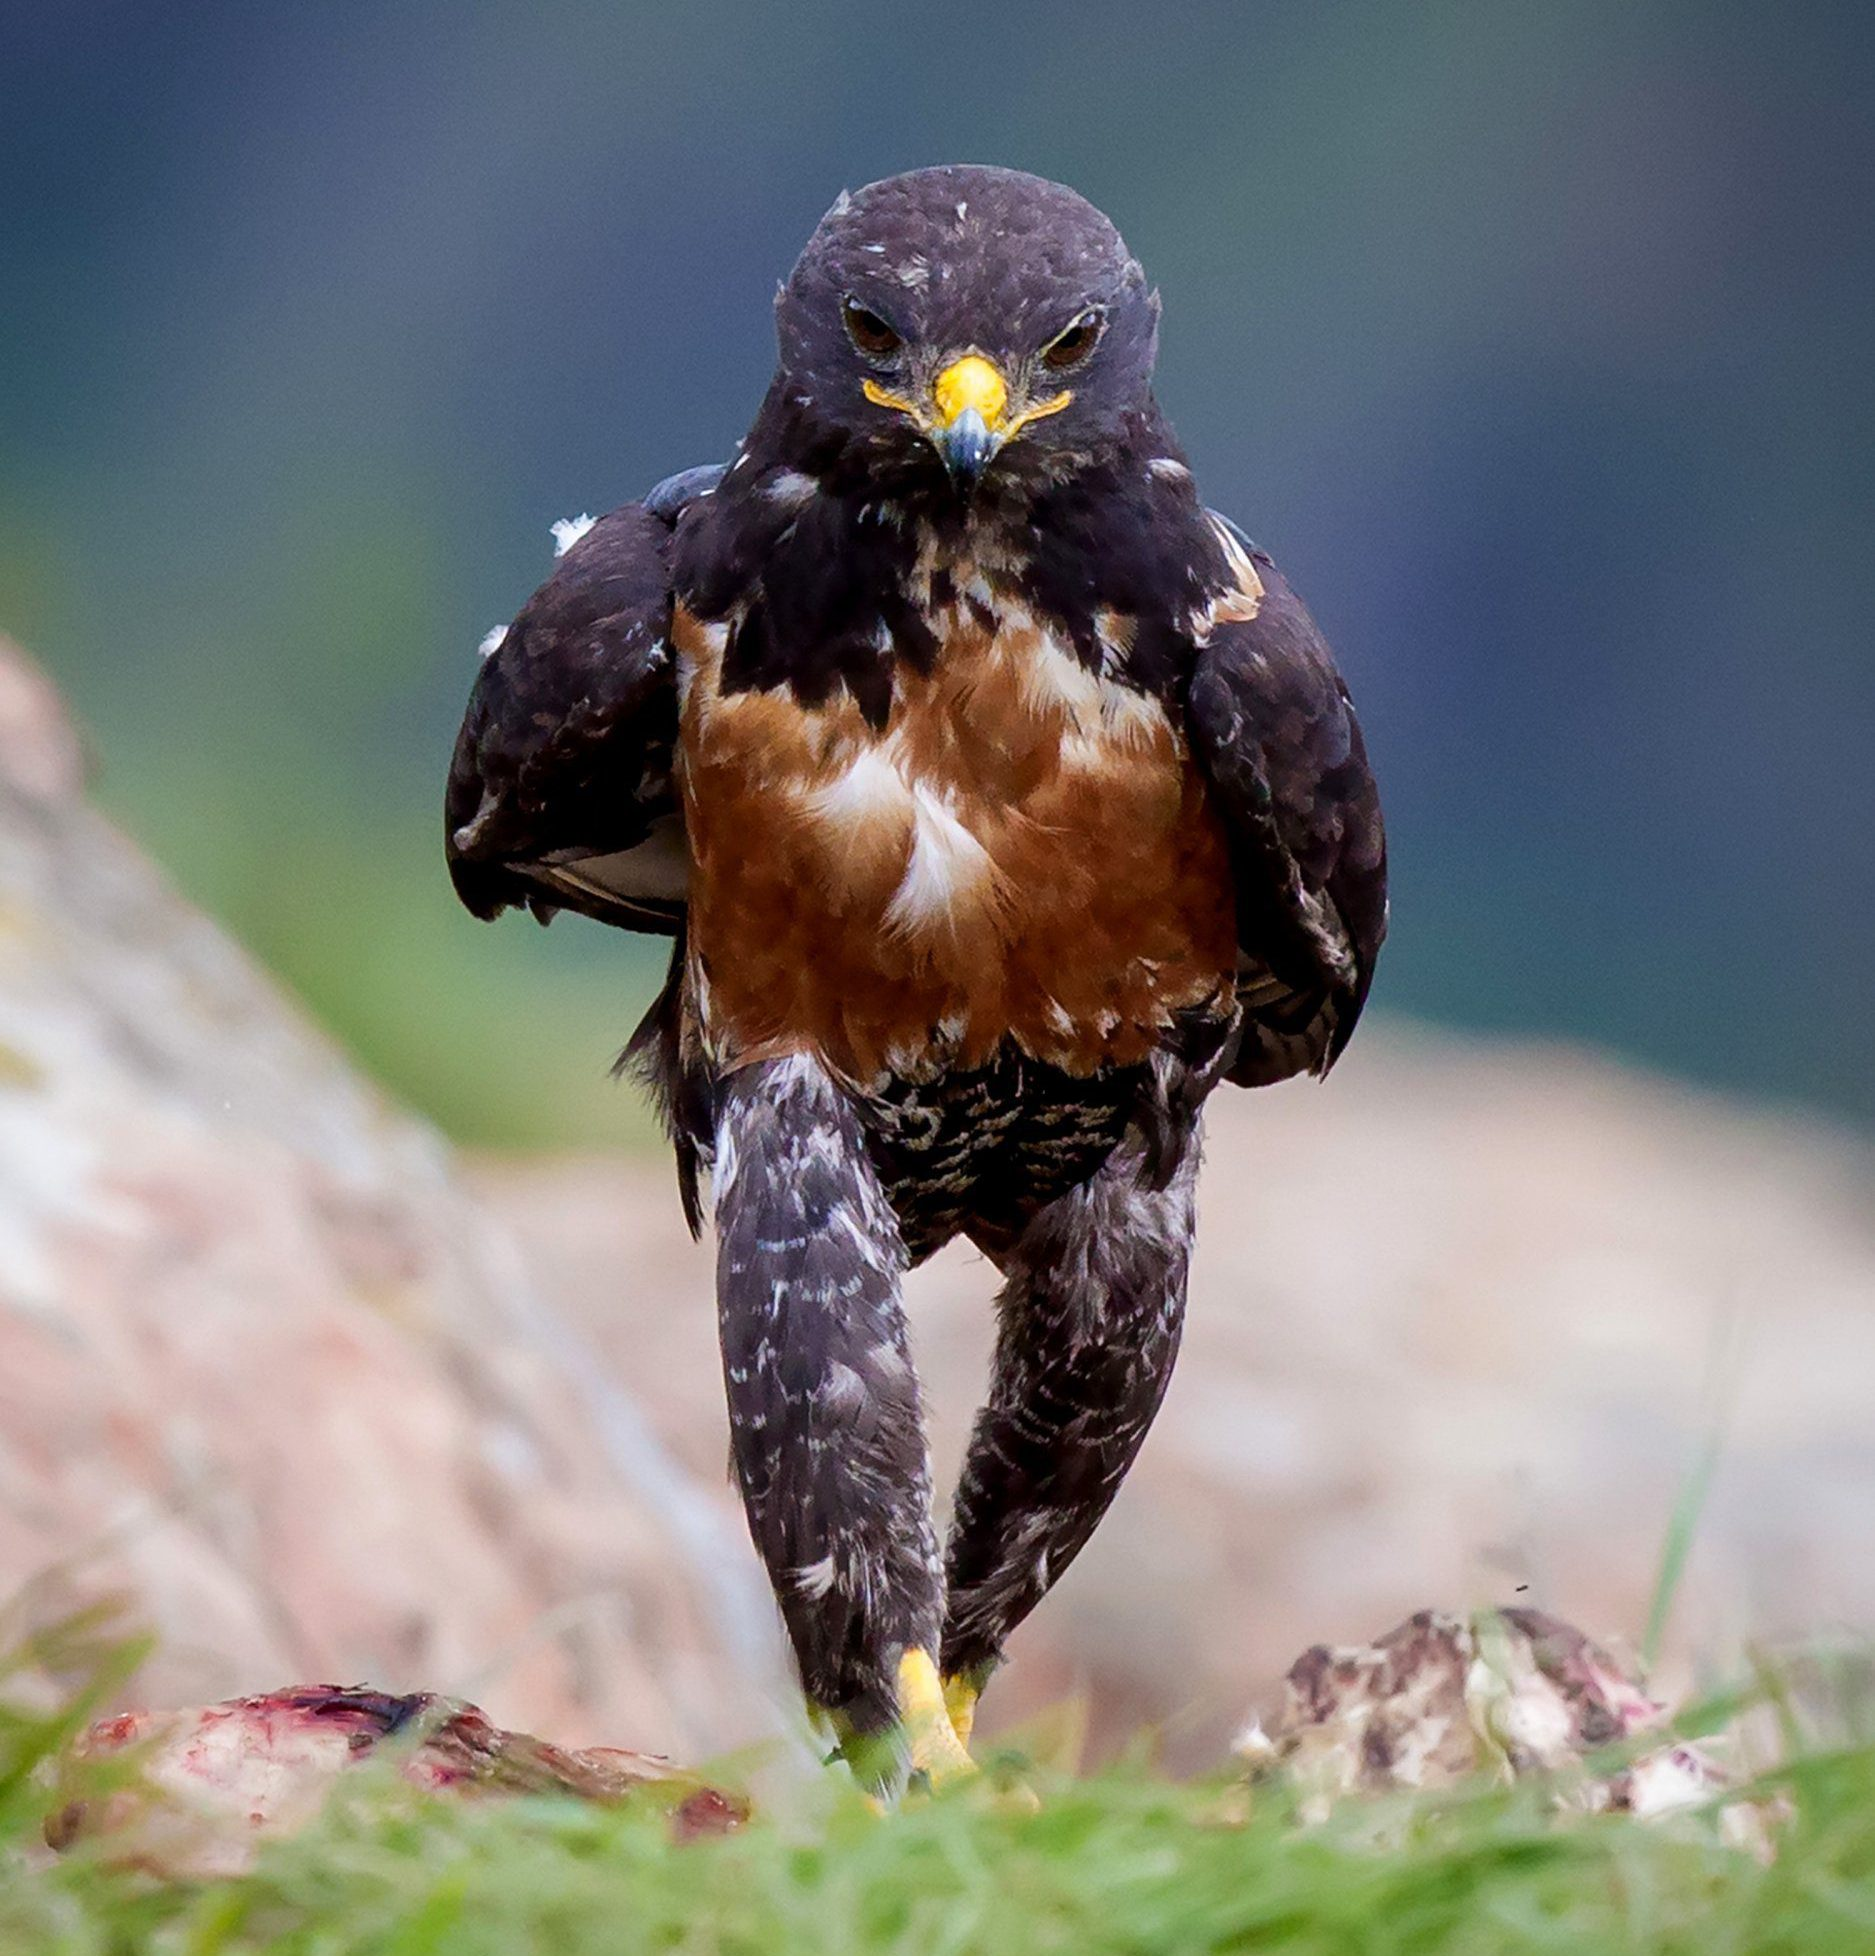 PIC BY CLINT RALPH / CATERS NEWS - (PICTURED: A hench hawk who clearly didnt skip leg day.) - Now thats what you call animal magic! This collection of images showcases the very best in wildlife photography - capturing everything from the incredible to the downright ridiculous. From two bears wrestling each other as they fish for salmon to a very angry looking bird, the animal kingdom has certainly given us plenty to wonder at in 2016. END.